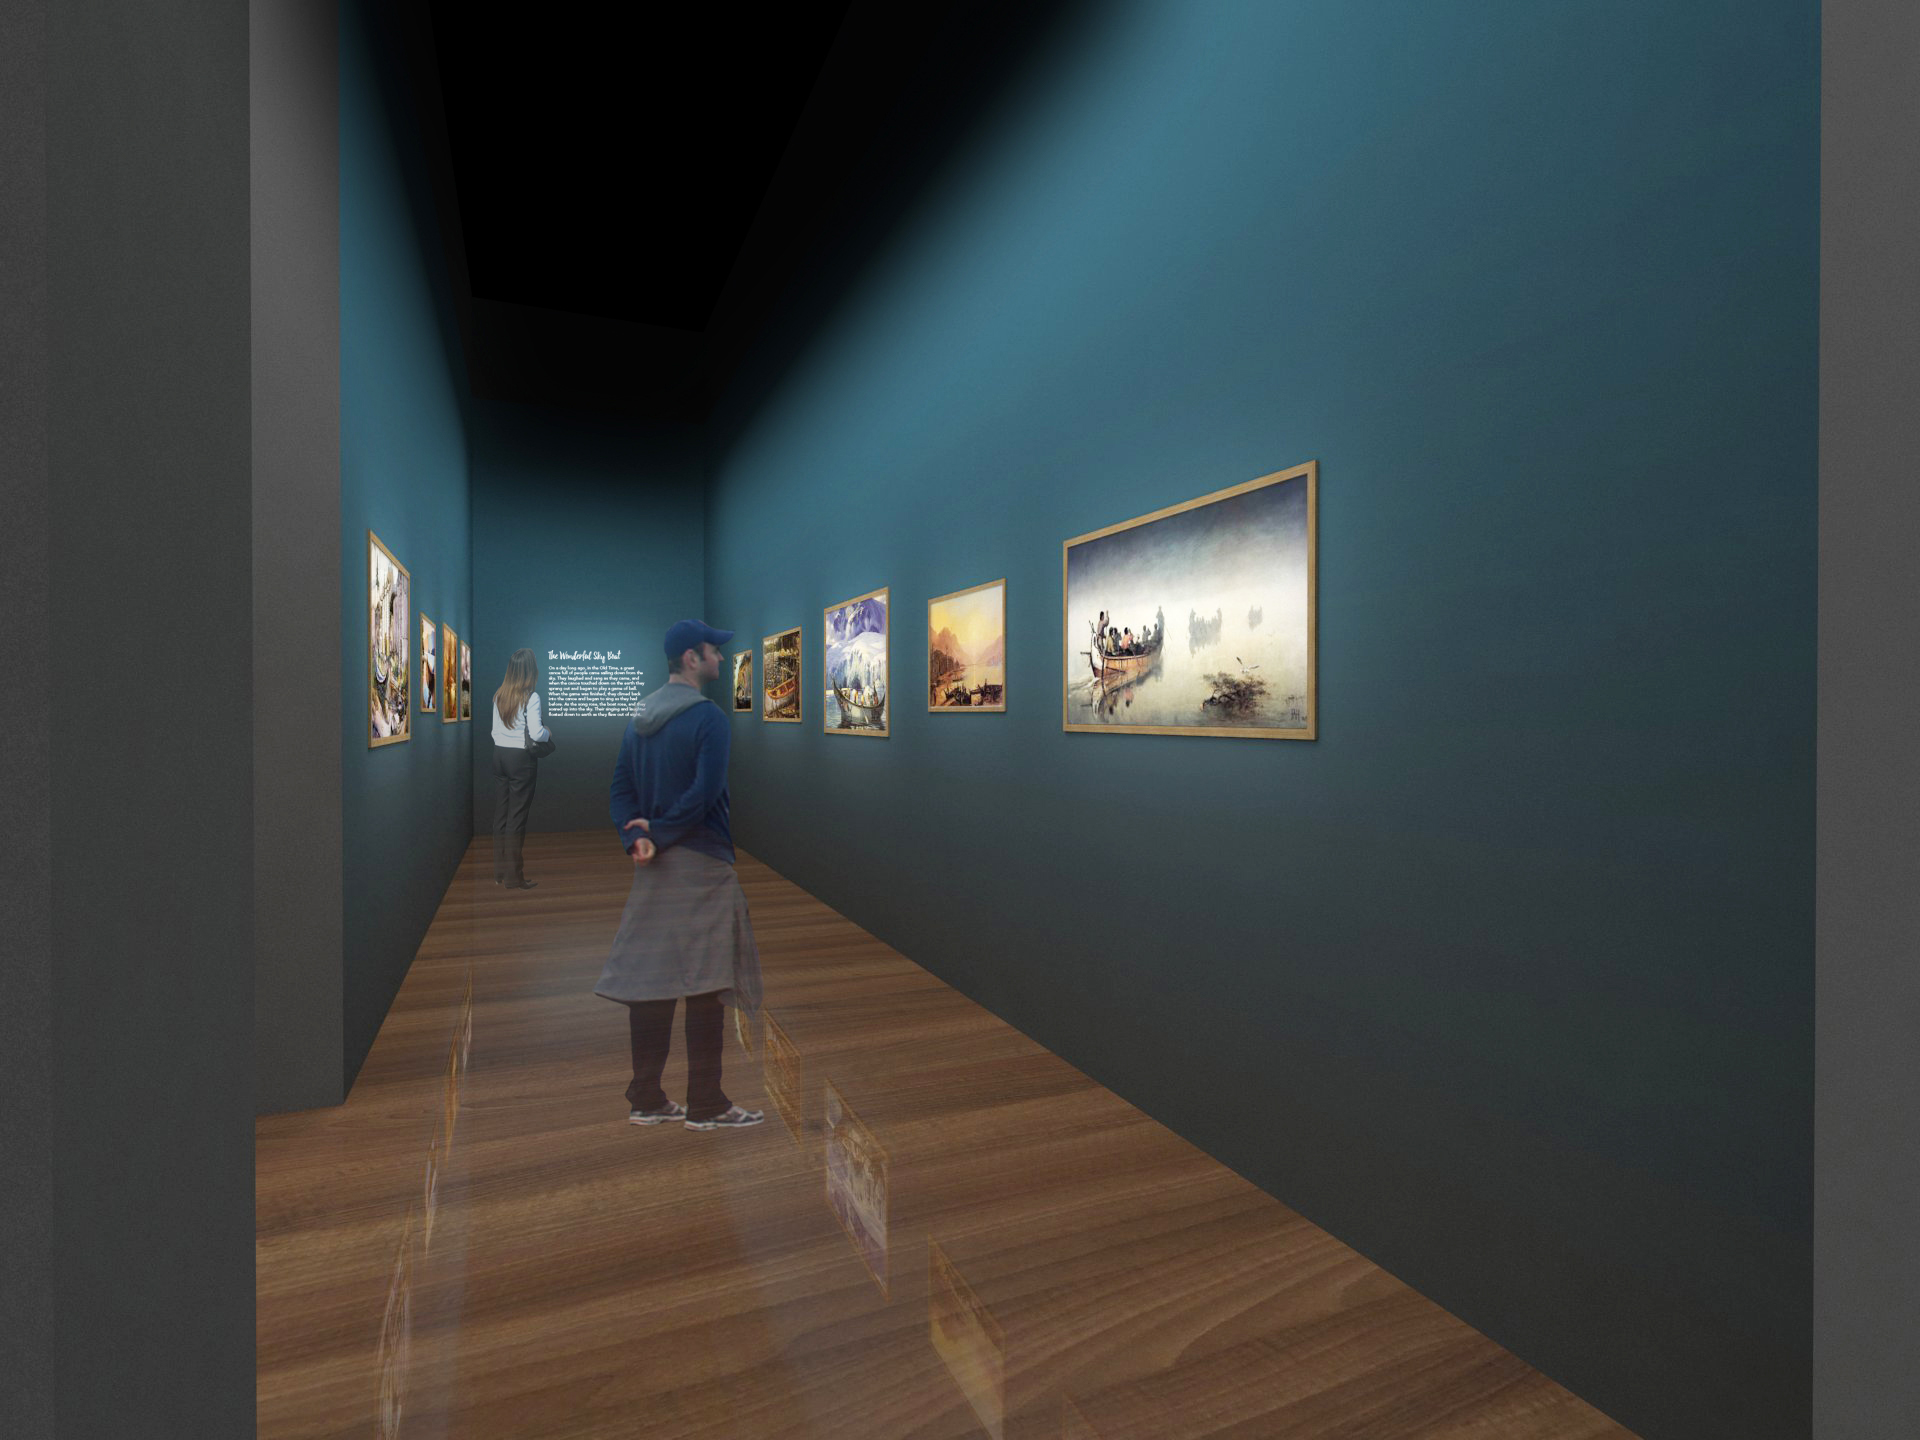 Visitors see artworks and poem about Native American boats.